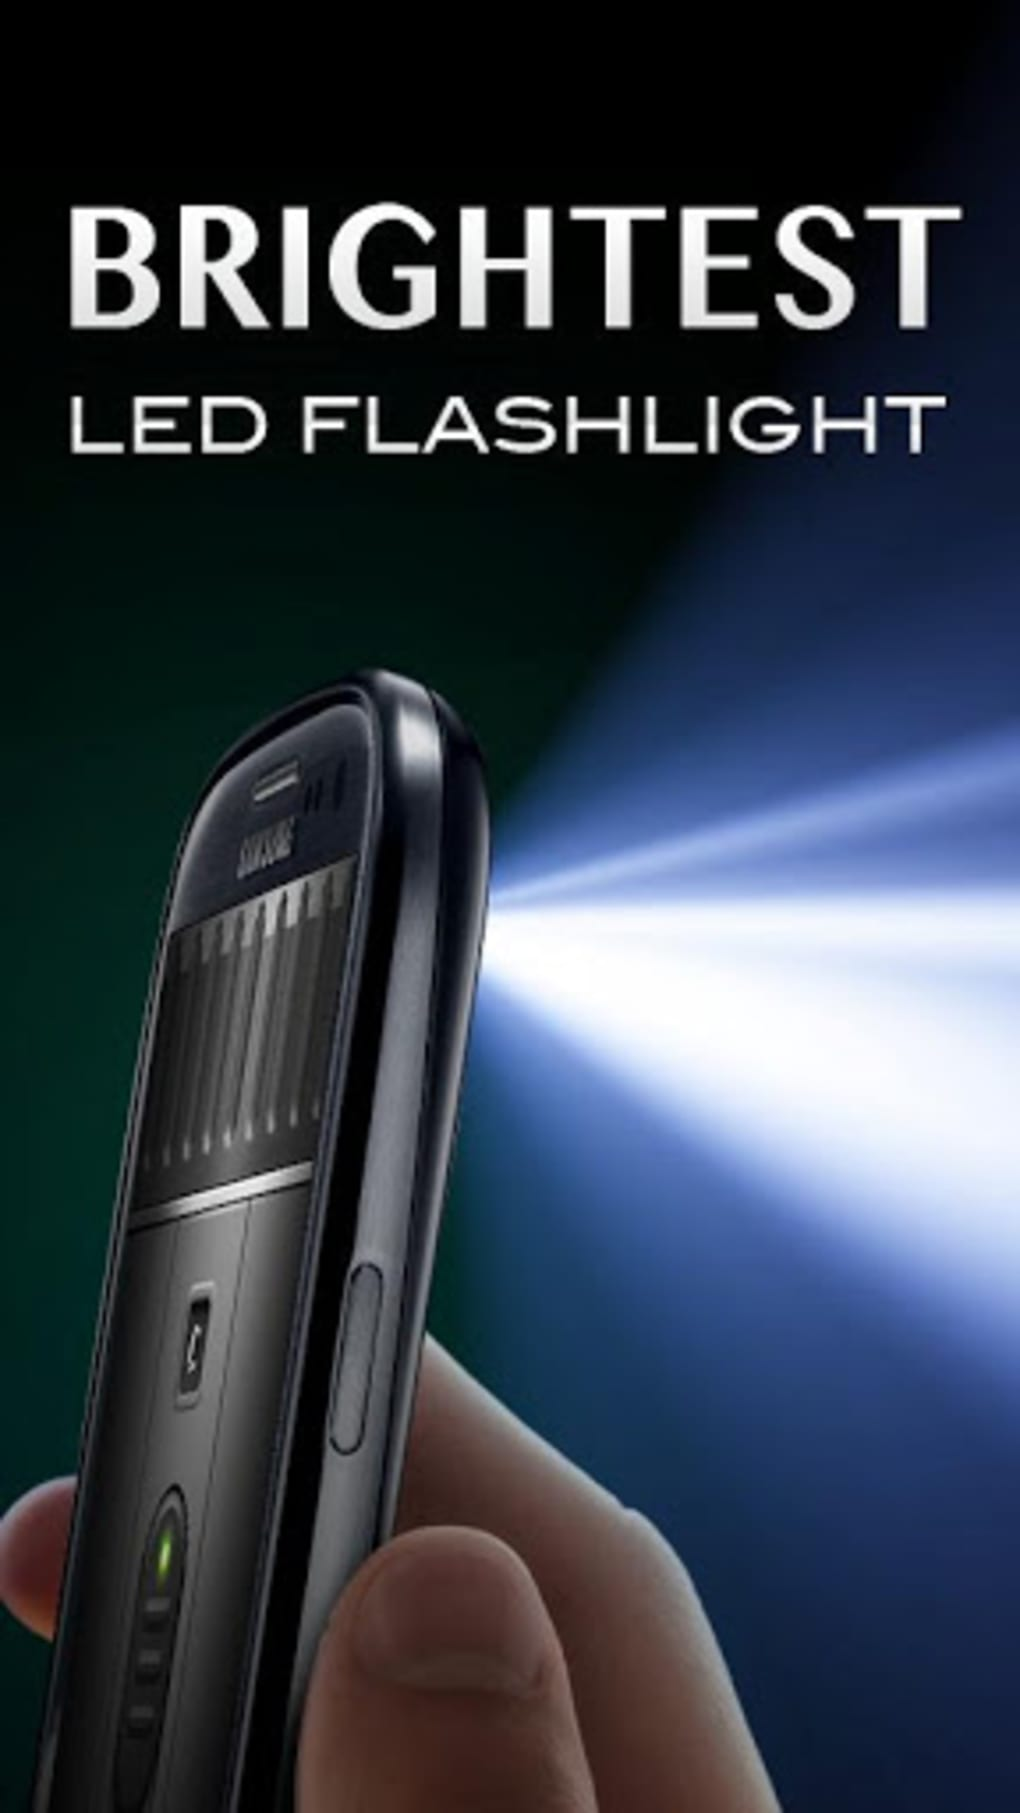 Torcia Led Super Luminosa Per Android Download